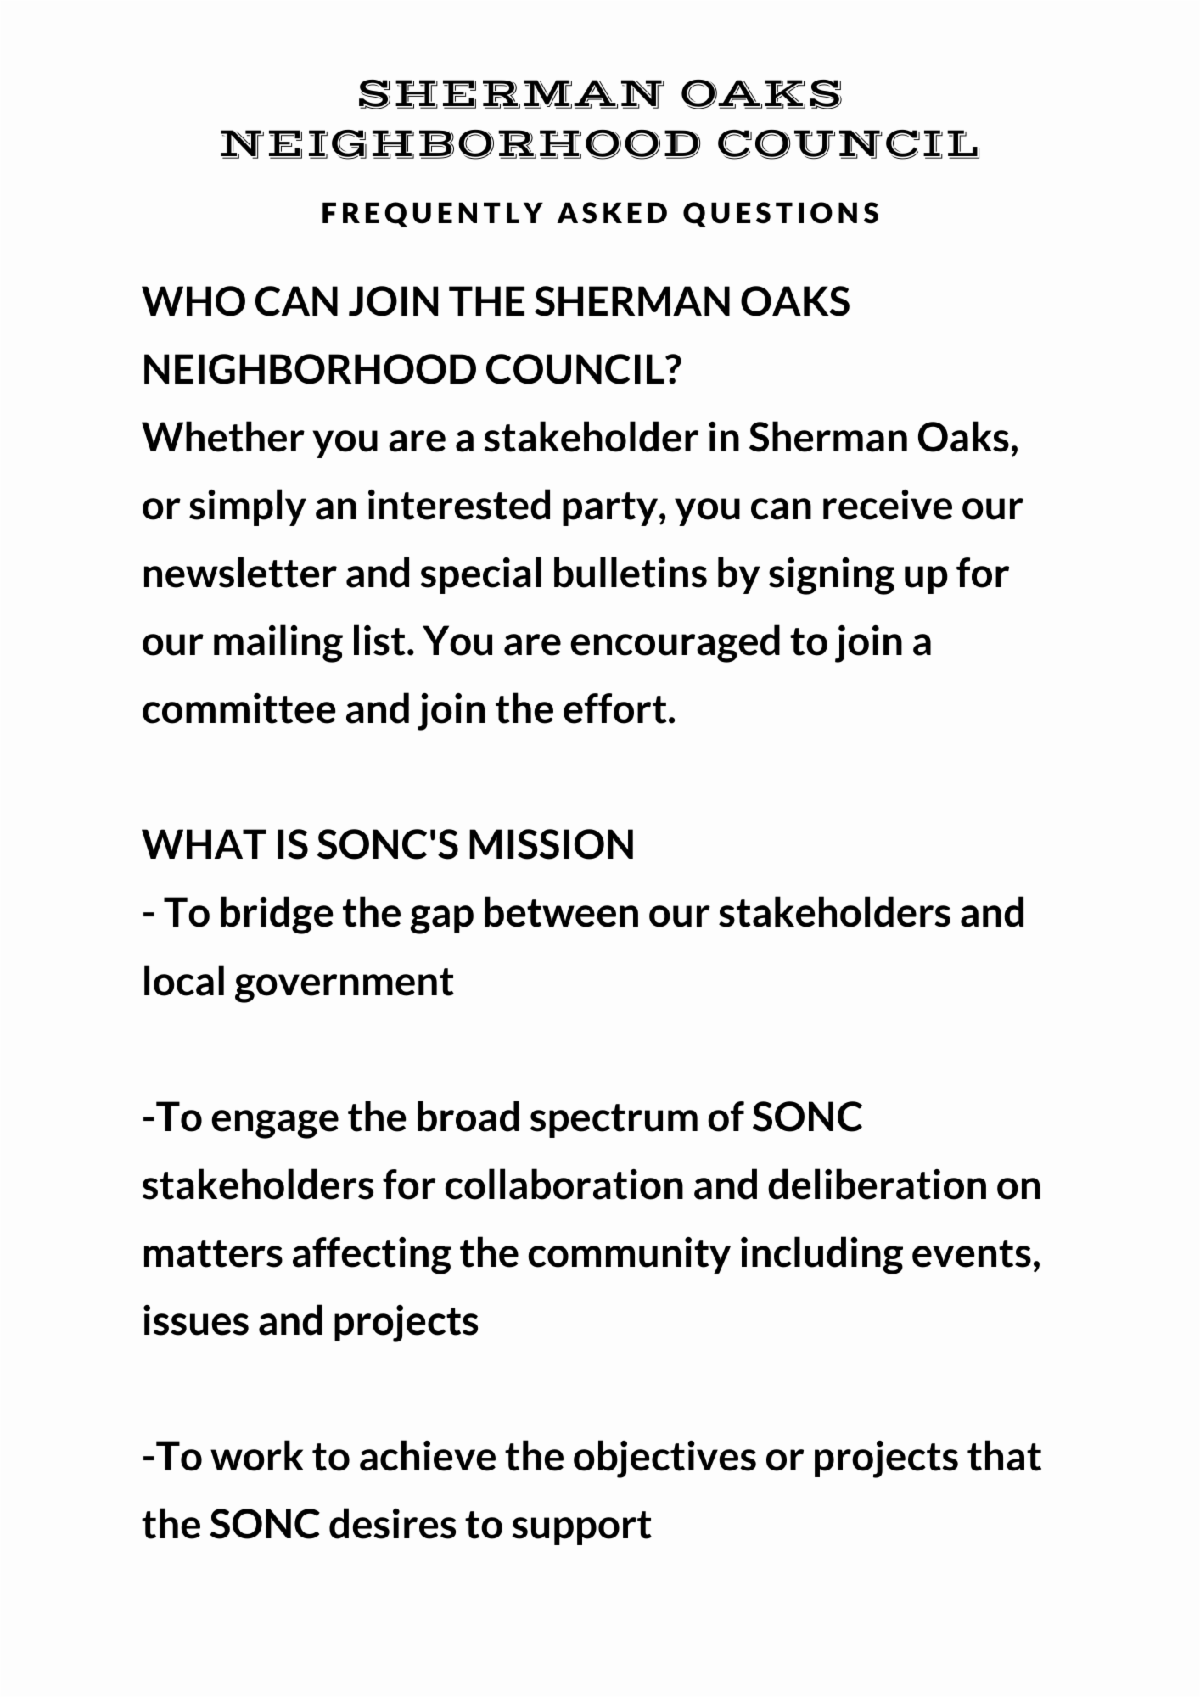 WHO CAN JOIN THE SHERMAN OAKS NEIGHBORHOOD COUNCIL Whether you are a stakeholder in Sherman Oaks or simply an interested party you can receive our newsletter and special bulletins bysigning up for our mailing list. You are encouraged to join a committee